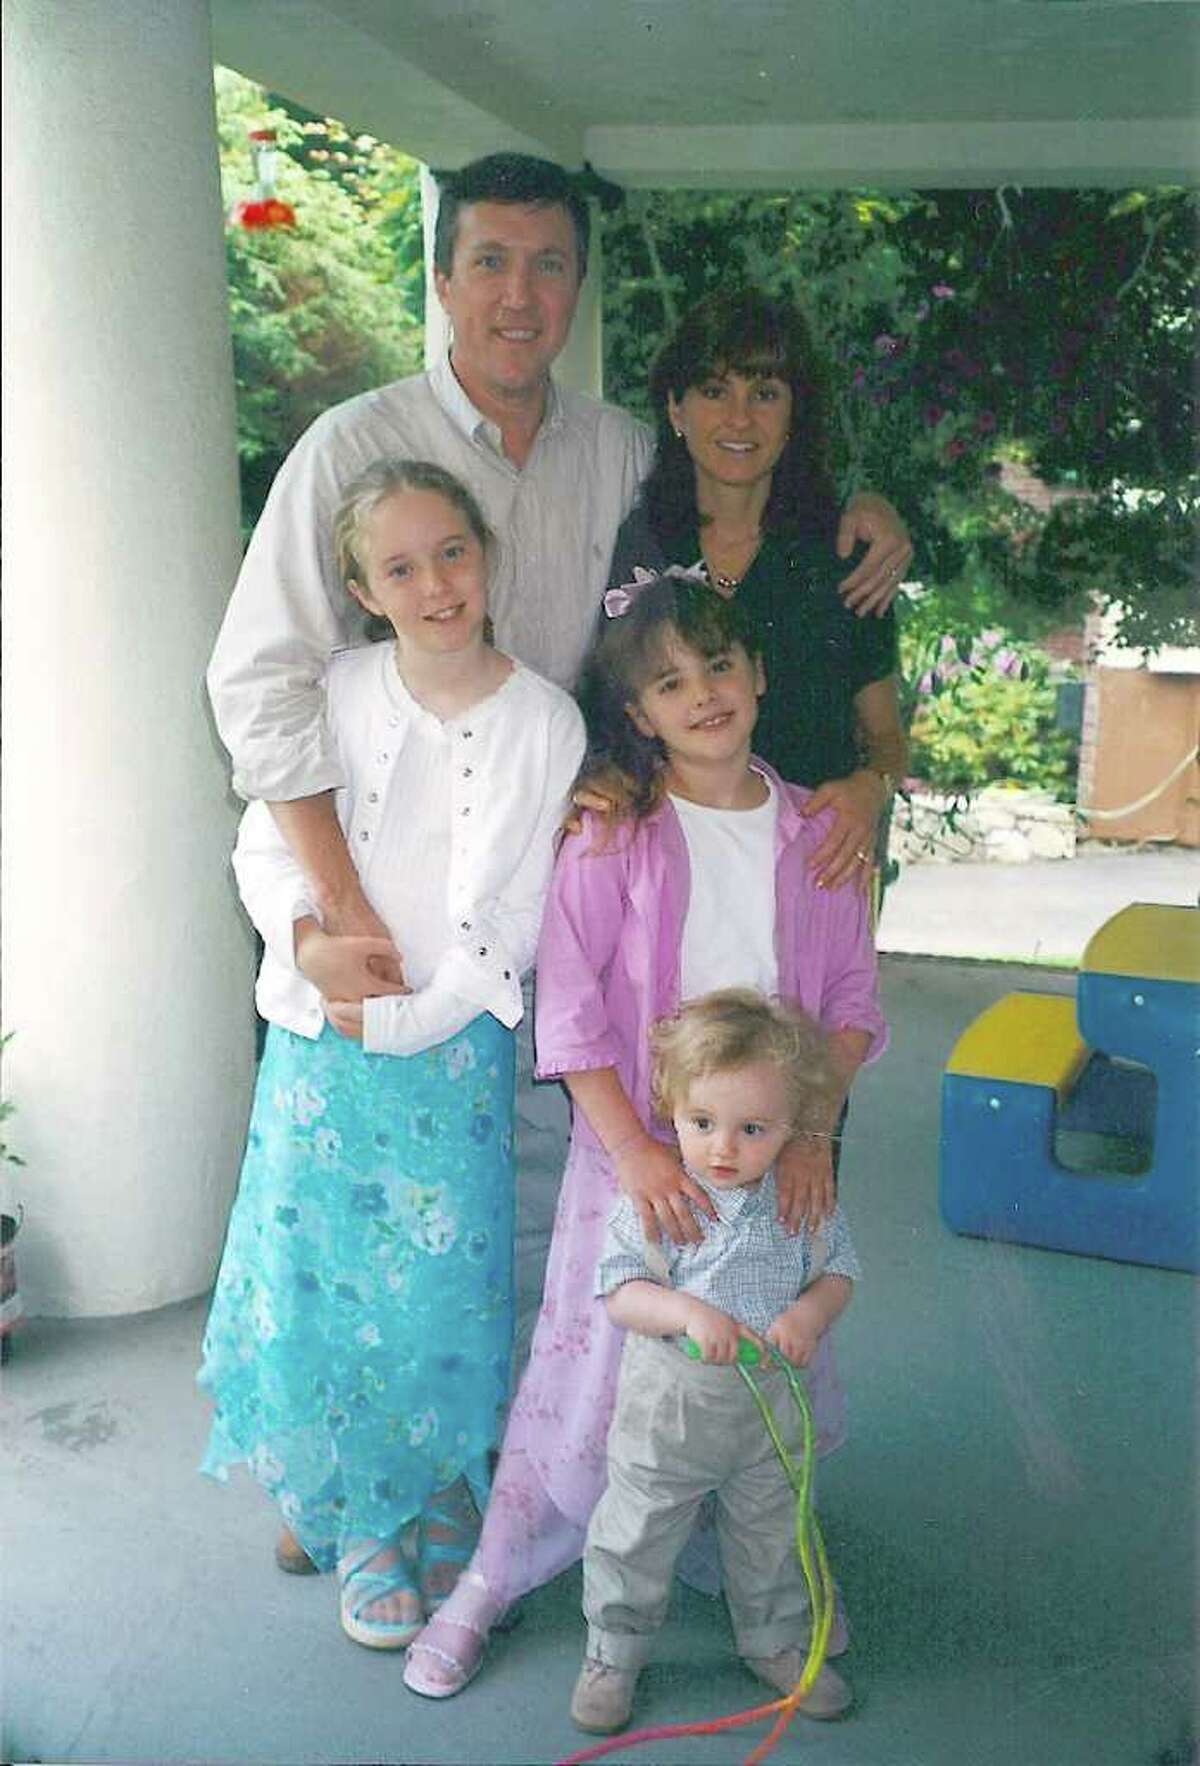 The Lenihan family of Cos Cob, shown here in spring 2001, months before father Joseph was killed in the 9/11 attacks.